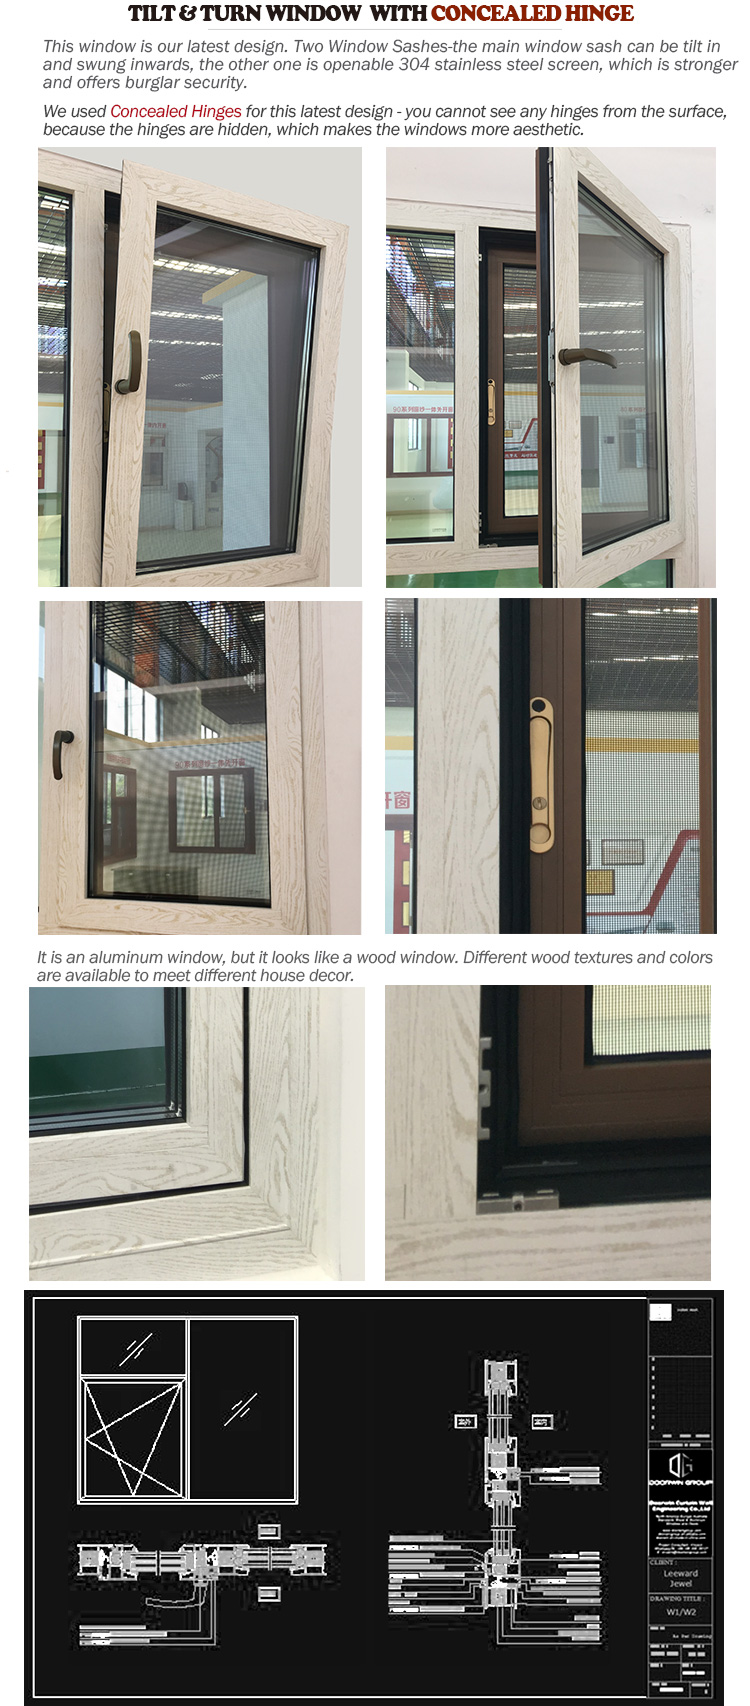 Wood grain finish aluminum window windows tilt turn